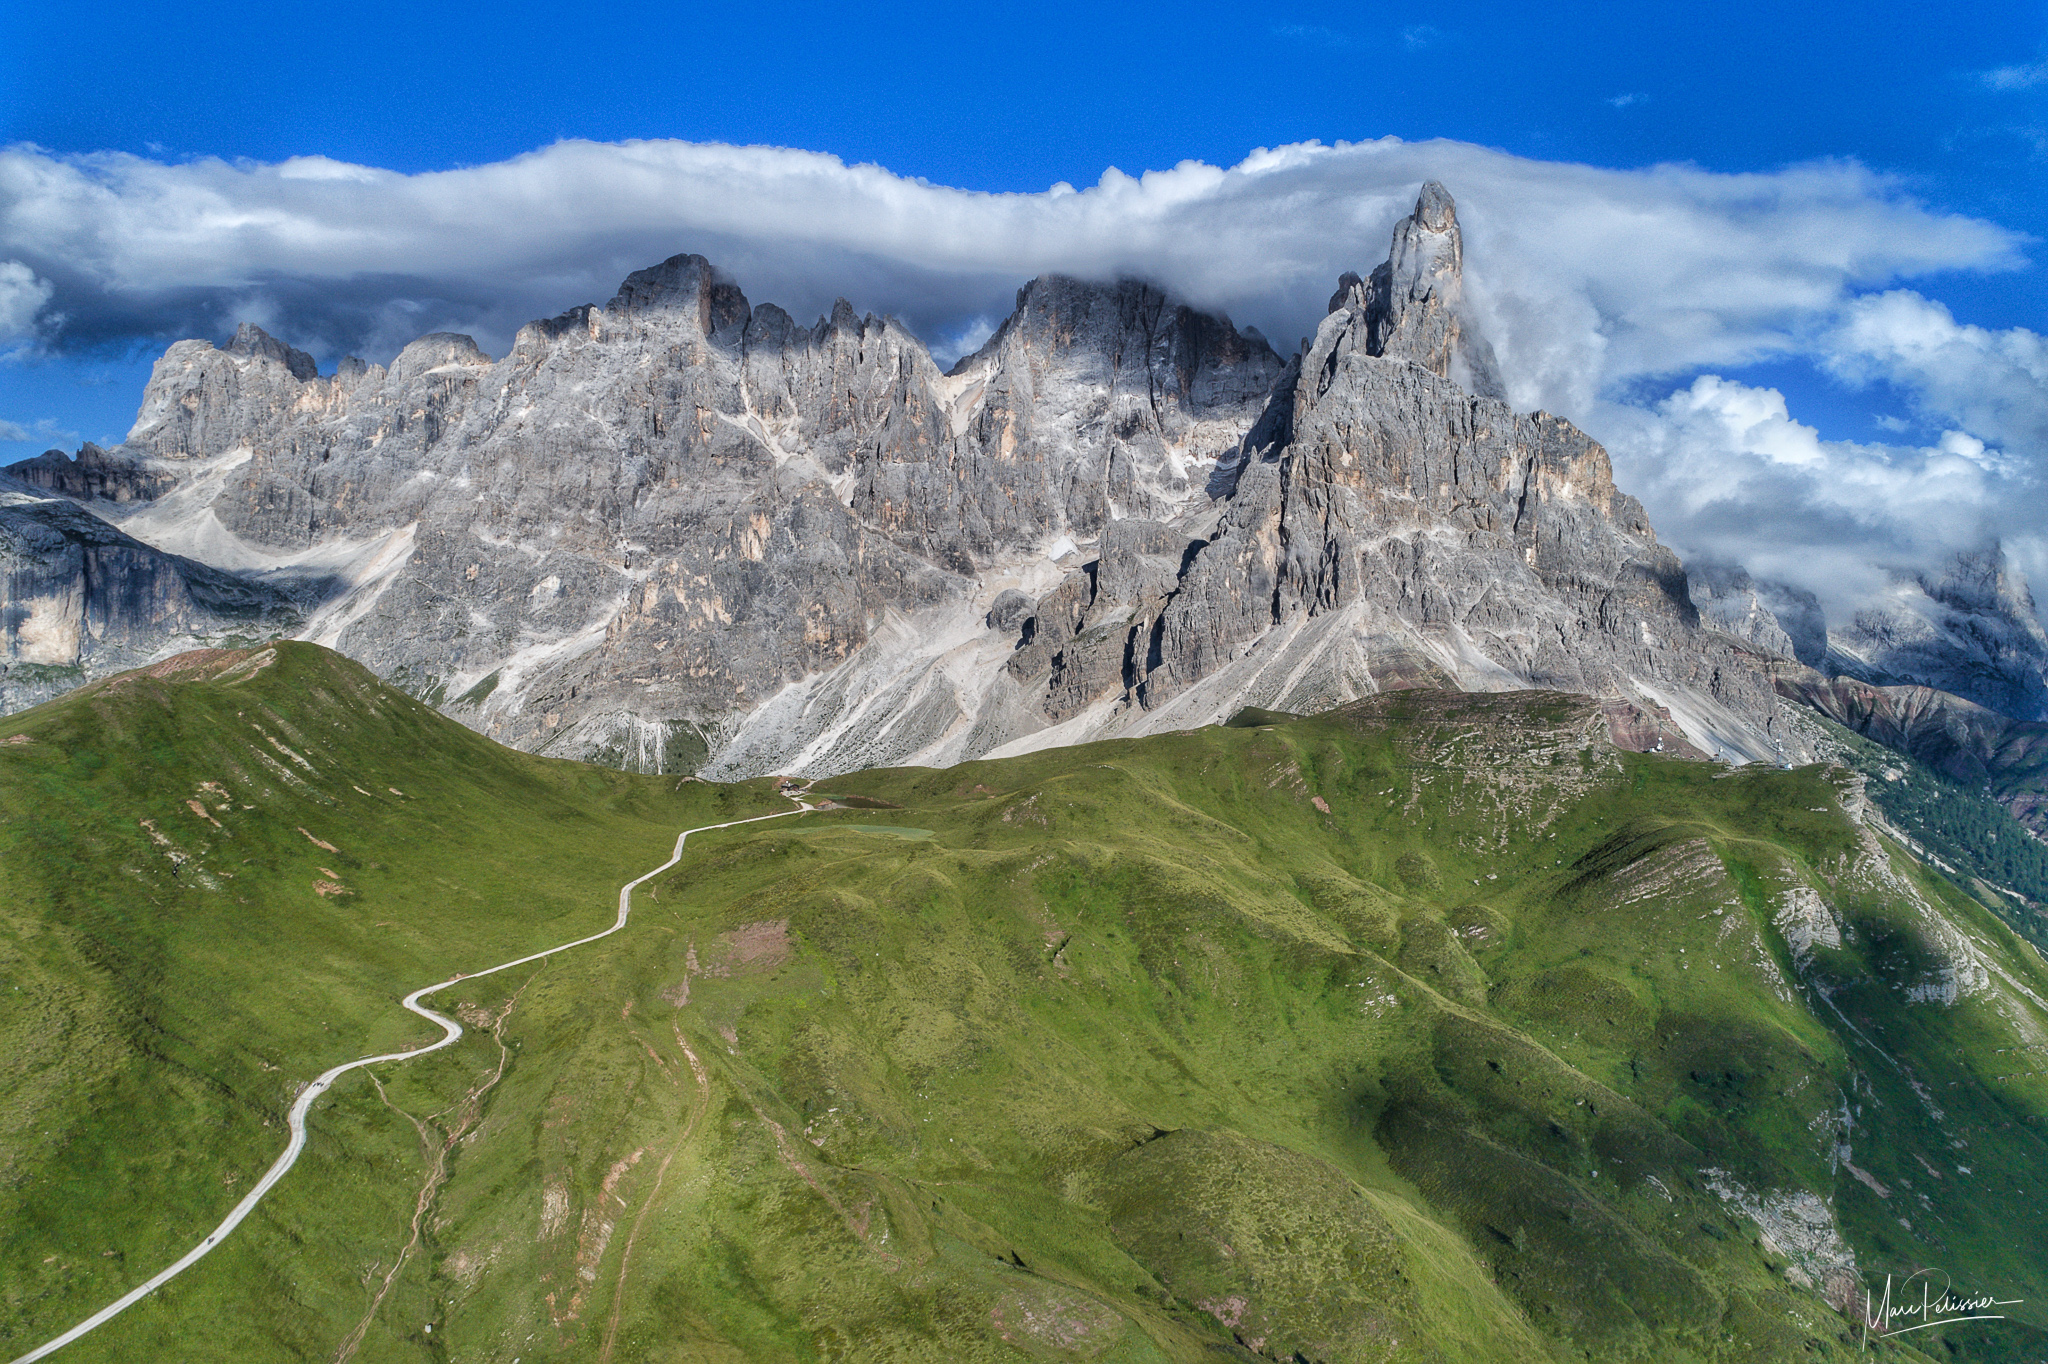 Passo rolle peaks in the cloud, Italy